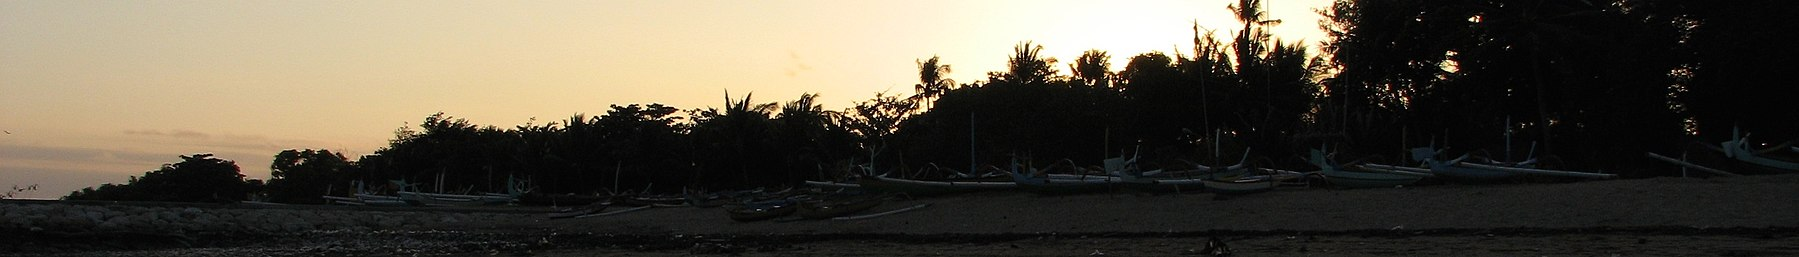 WV banner South Bali Sunset.jpg